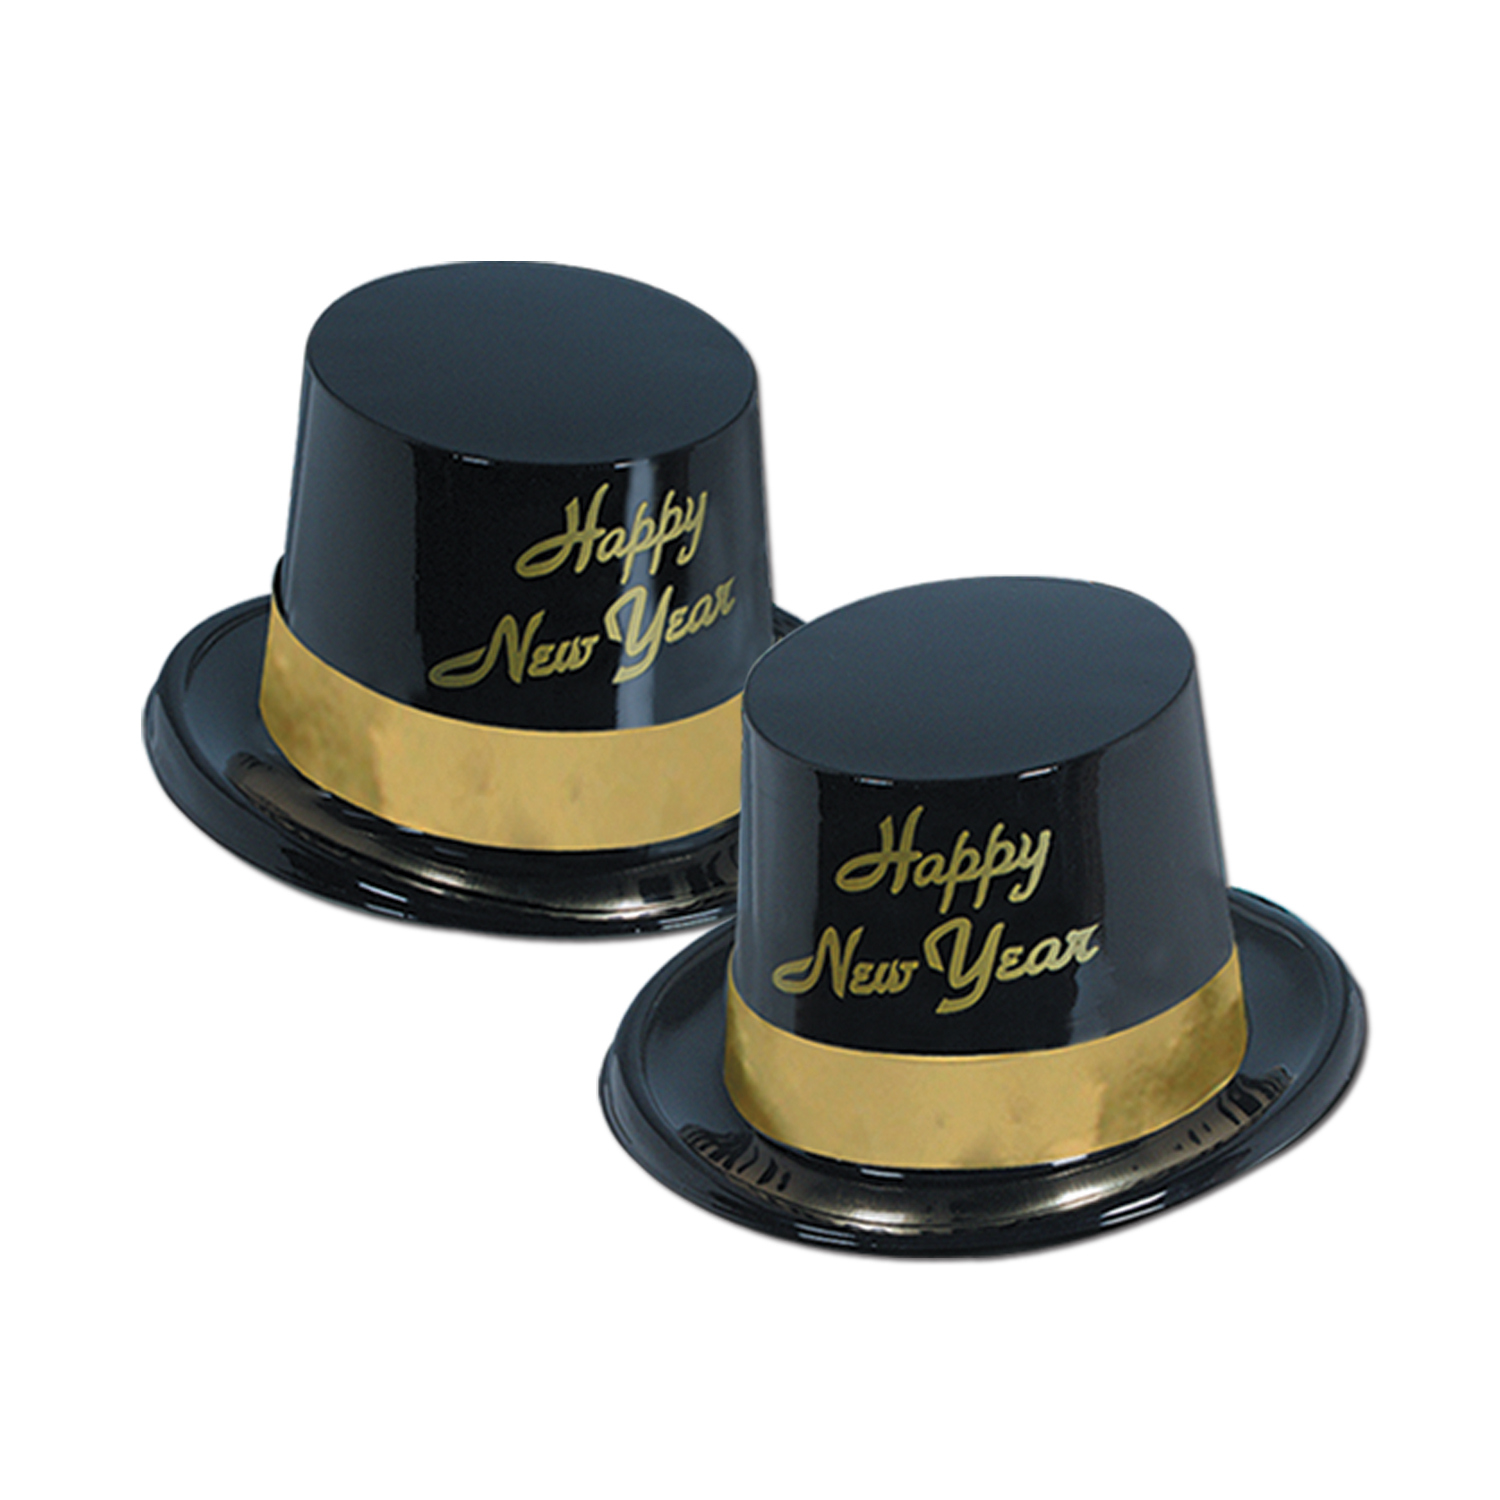 Gold Legacy Topper (Pack of 25) Gold Legacy Topper, Top Hat, Party Hats, Hats, New Year's Hats, New Year's Party Hats, New Year's Eve Hats, New Year's Eve Party Hats